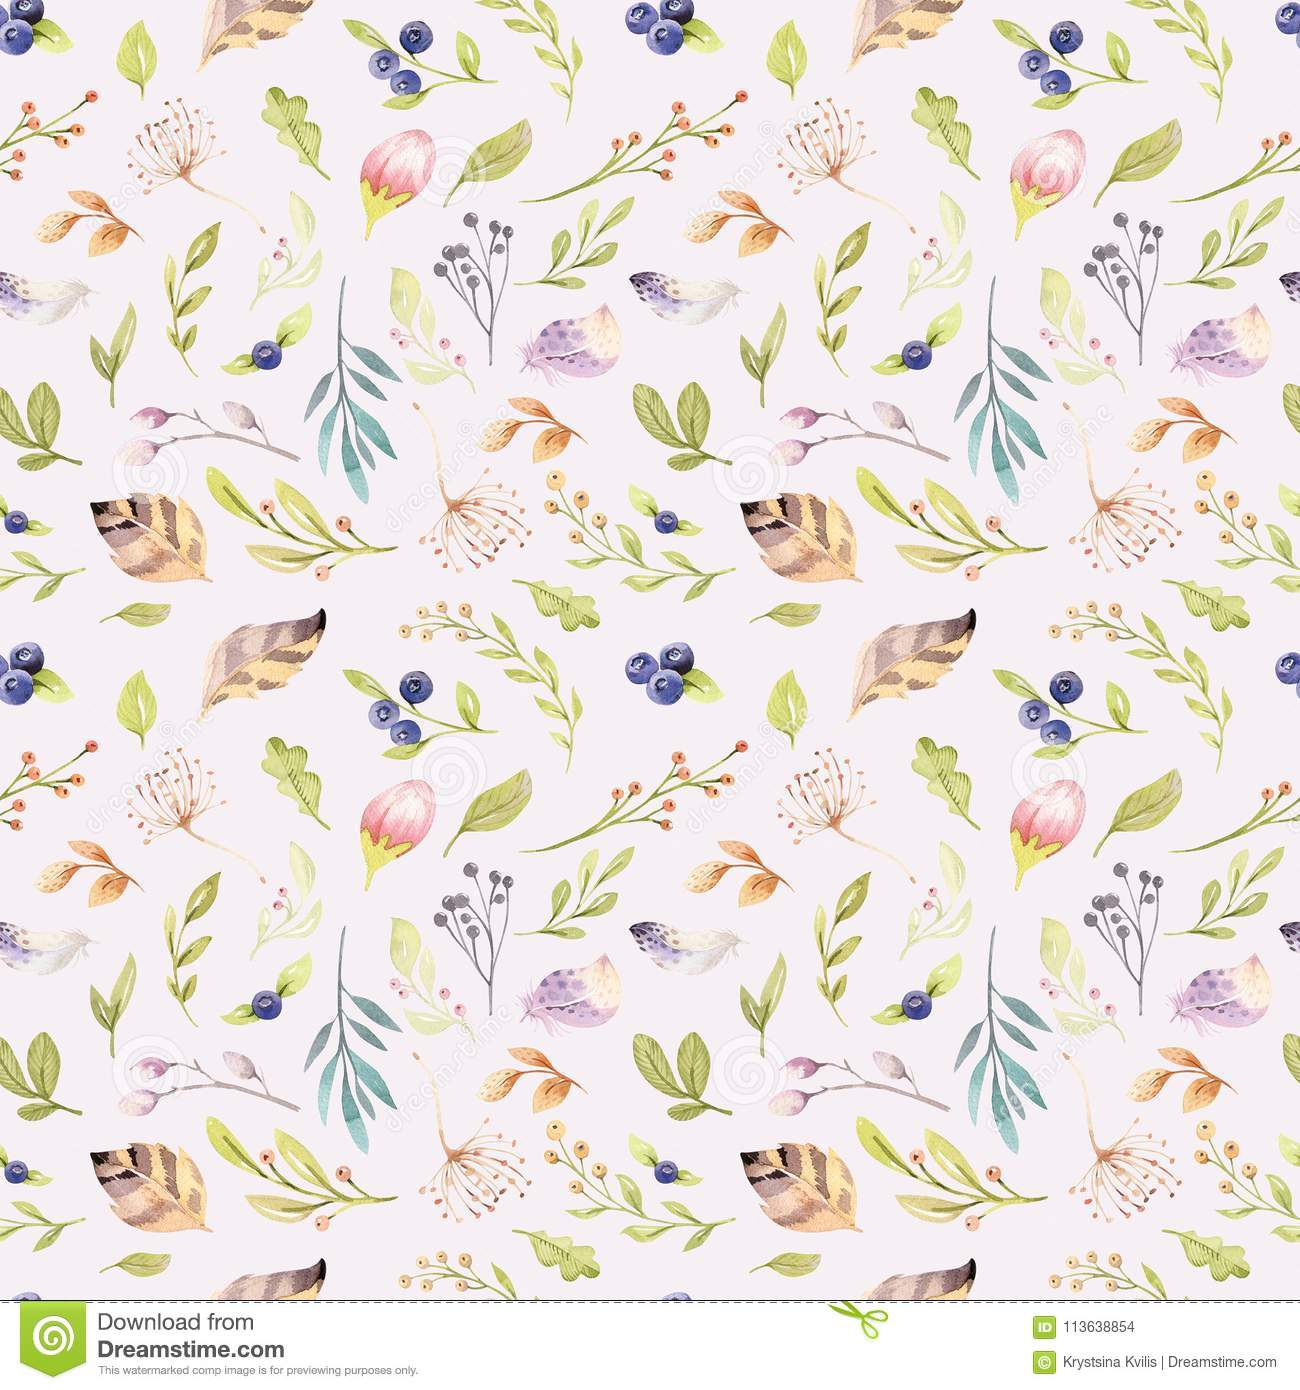 Watercolor Floral Bloom Seamless Pattern In Pastel Colors